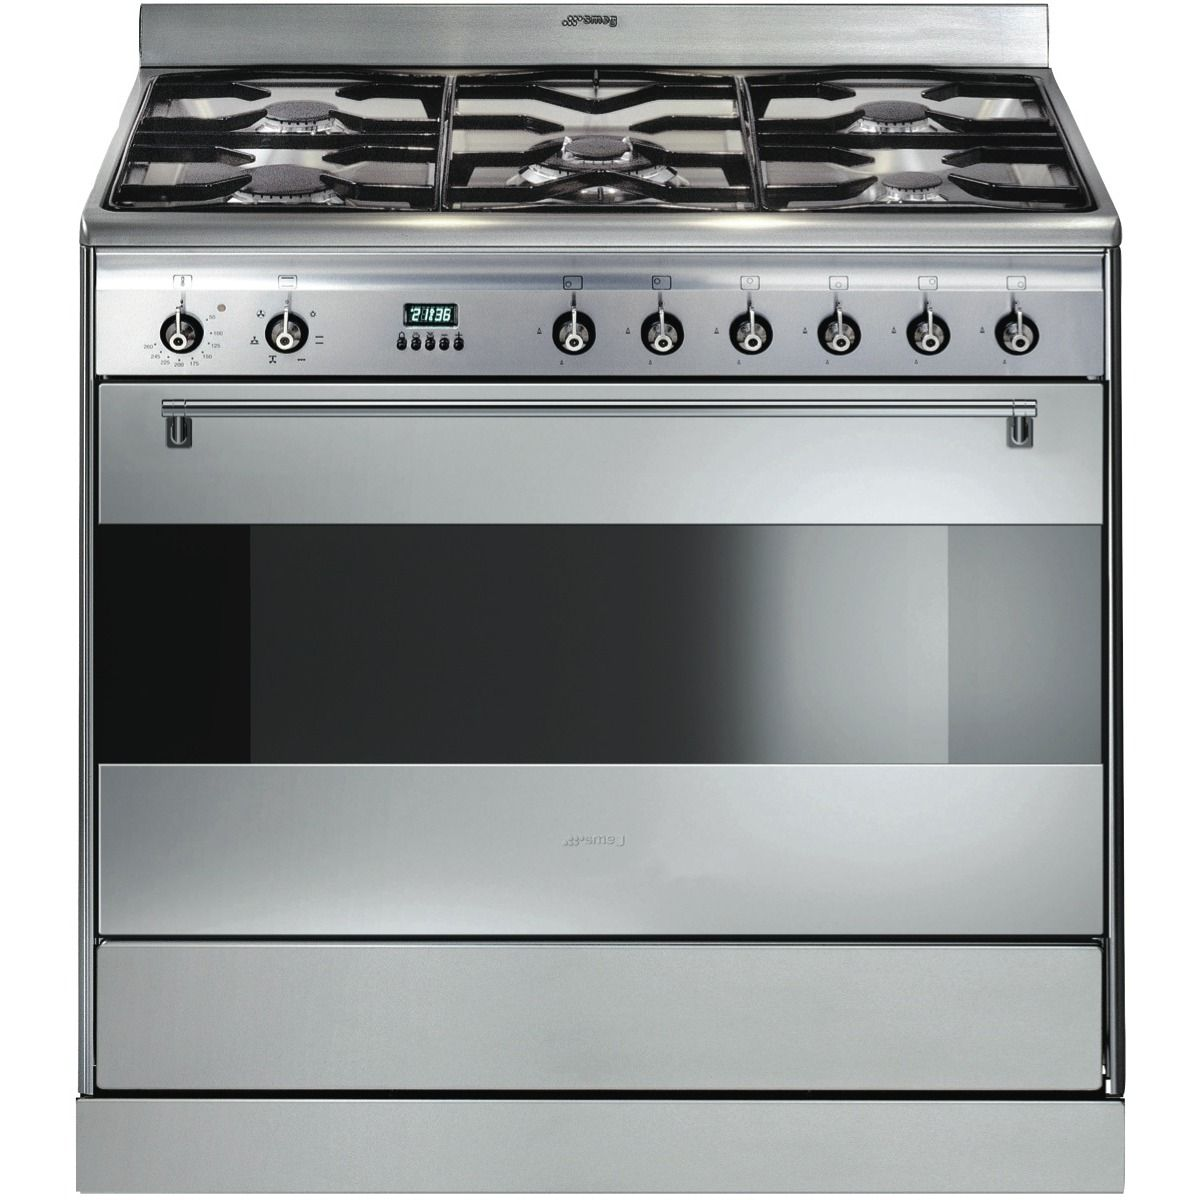 Uncategorized Good Guys Kitchen Appliances shop online for smeg sa9065xs 90cm dual fuel upright cooker kitchens